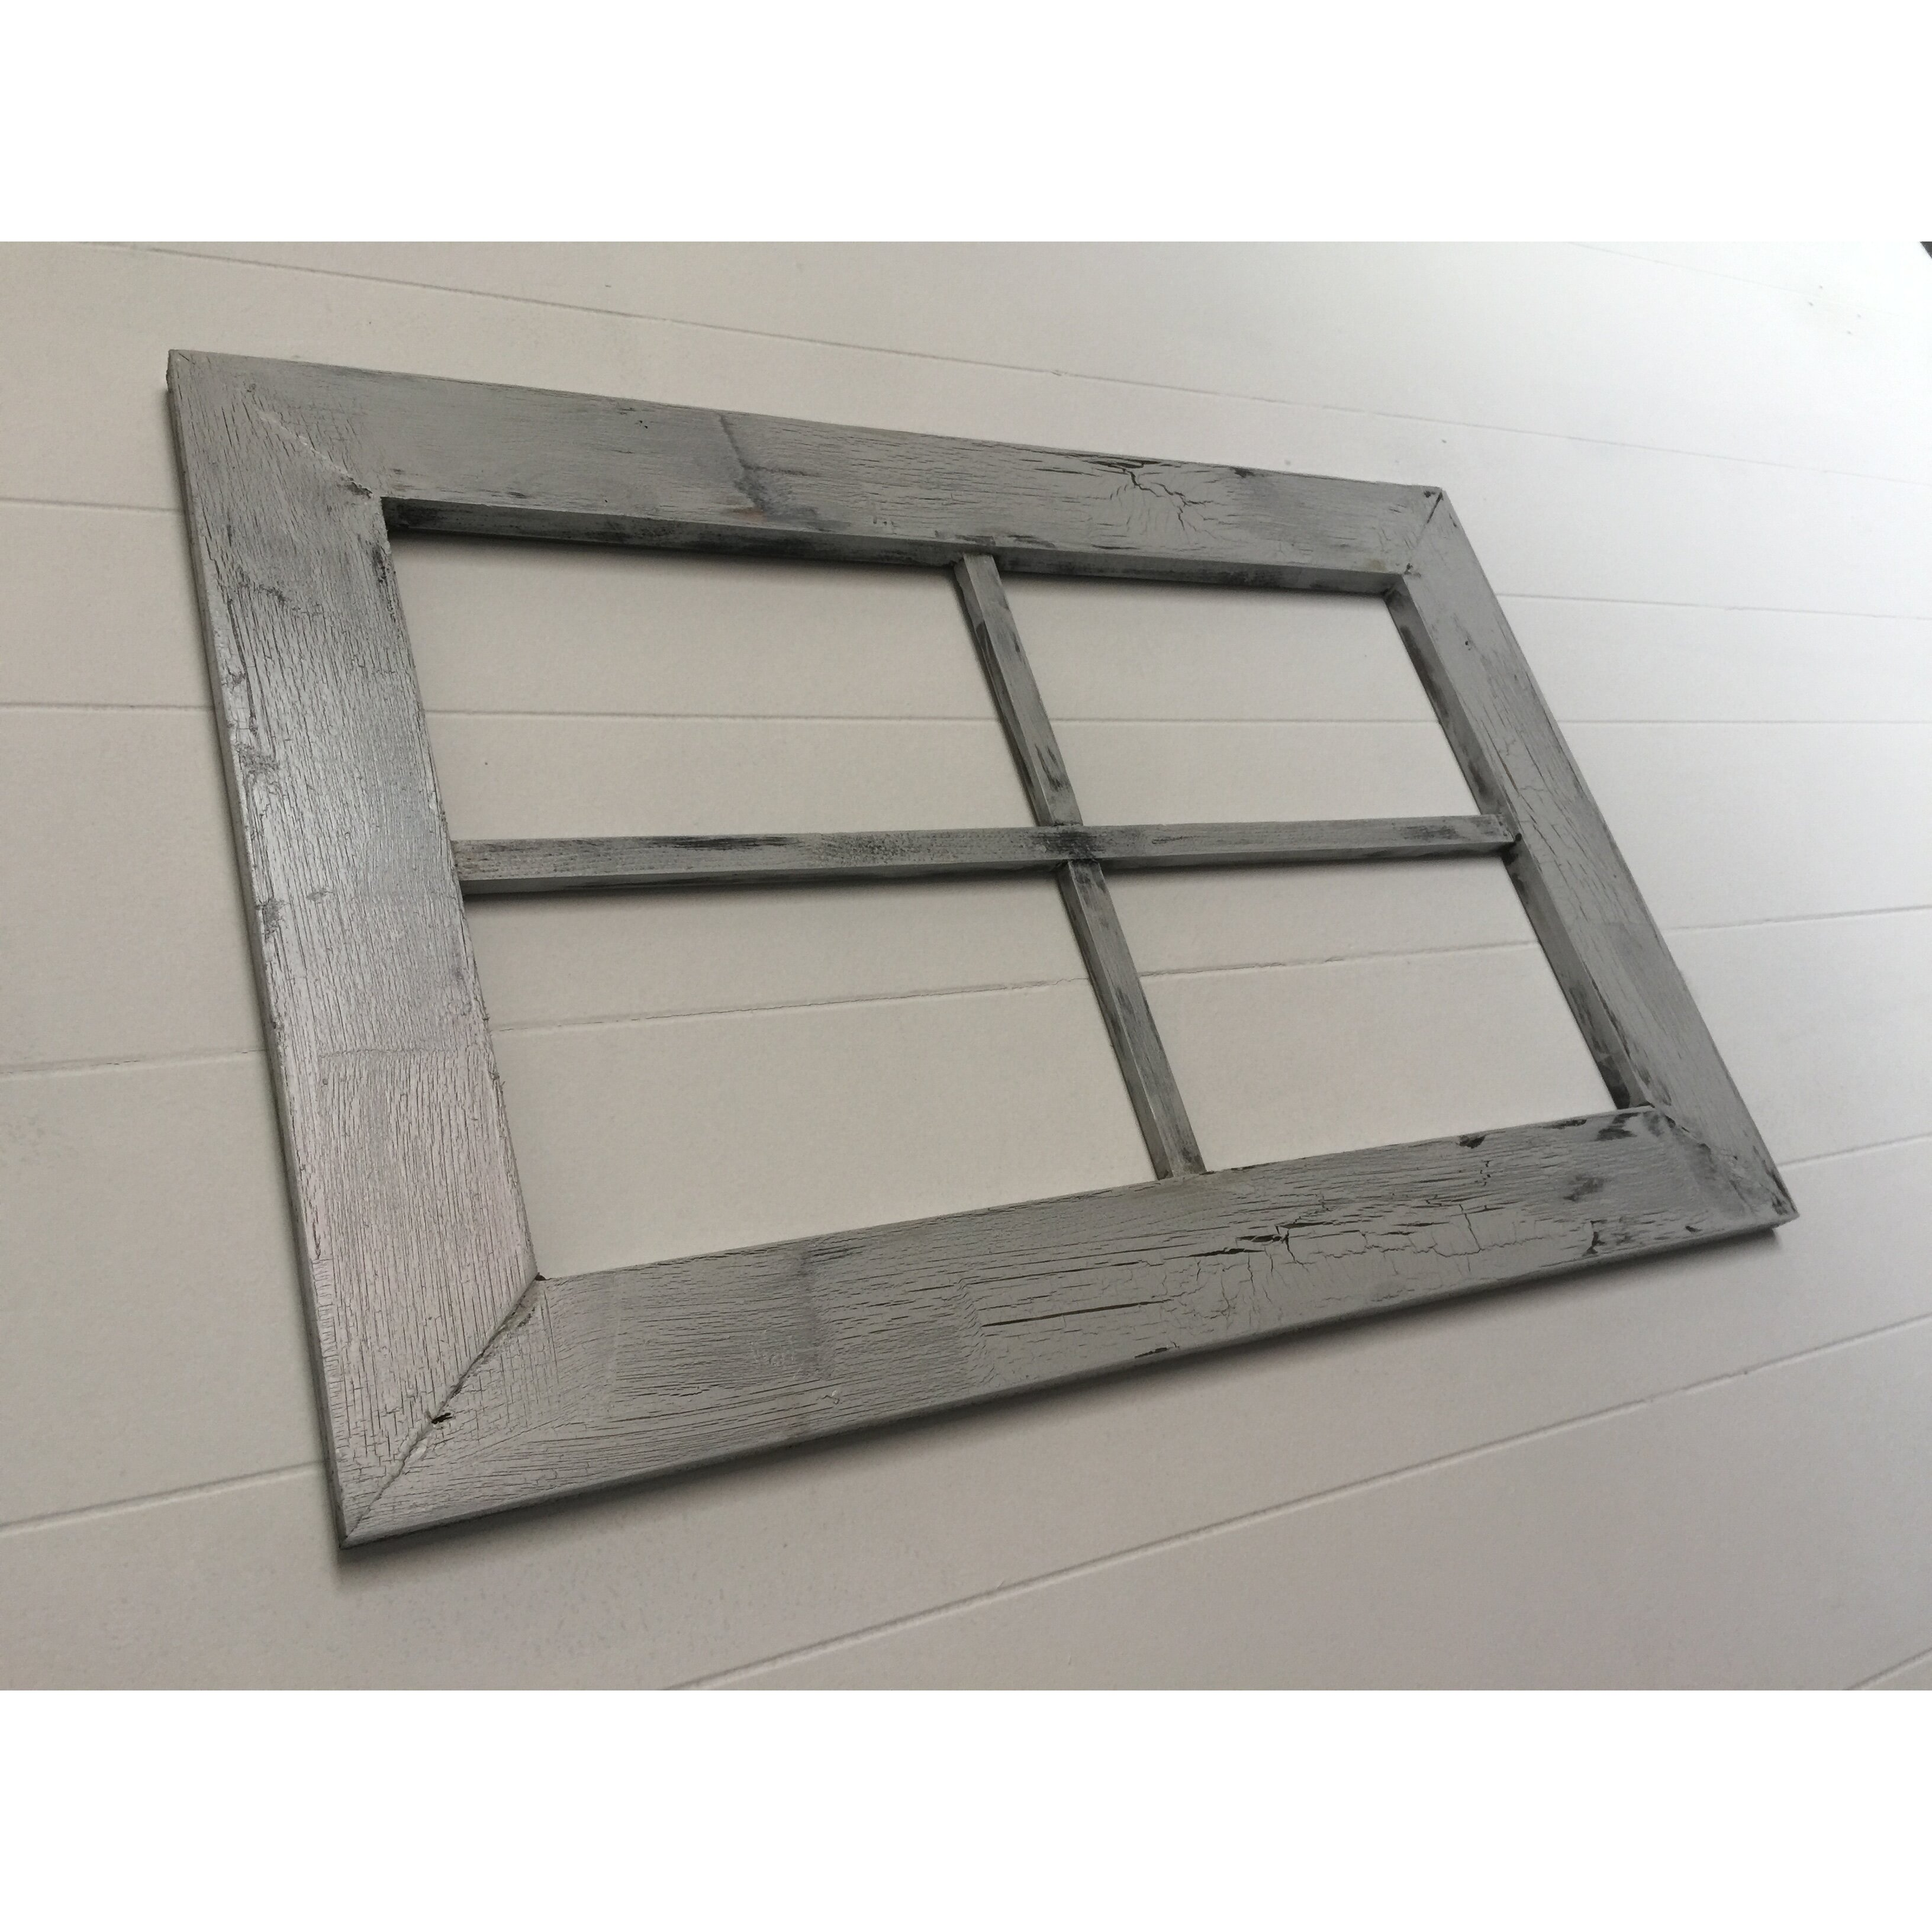 essex hand crafted wood products rustic wood window frame wall dcor